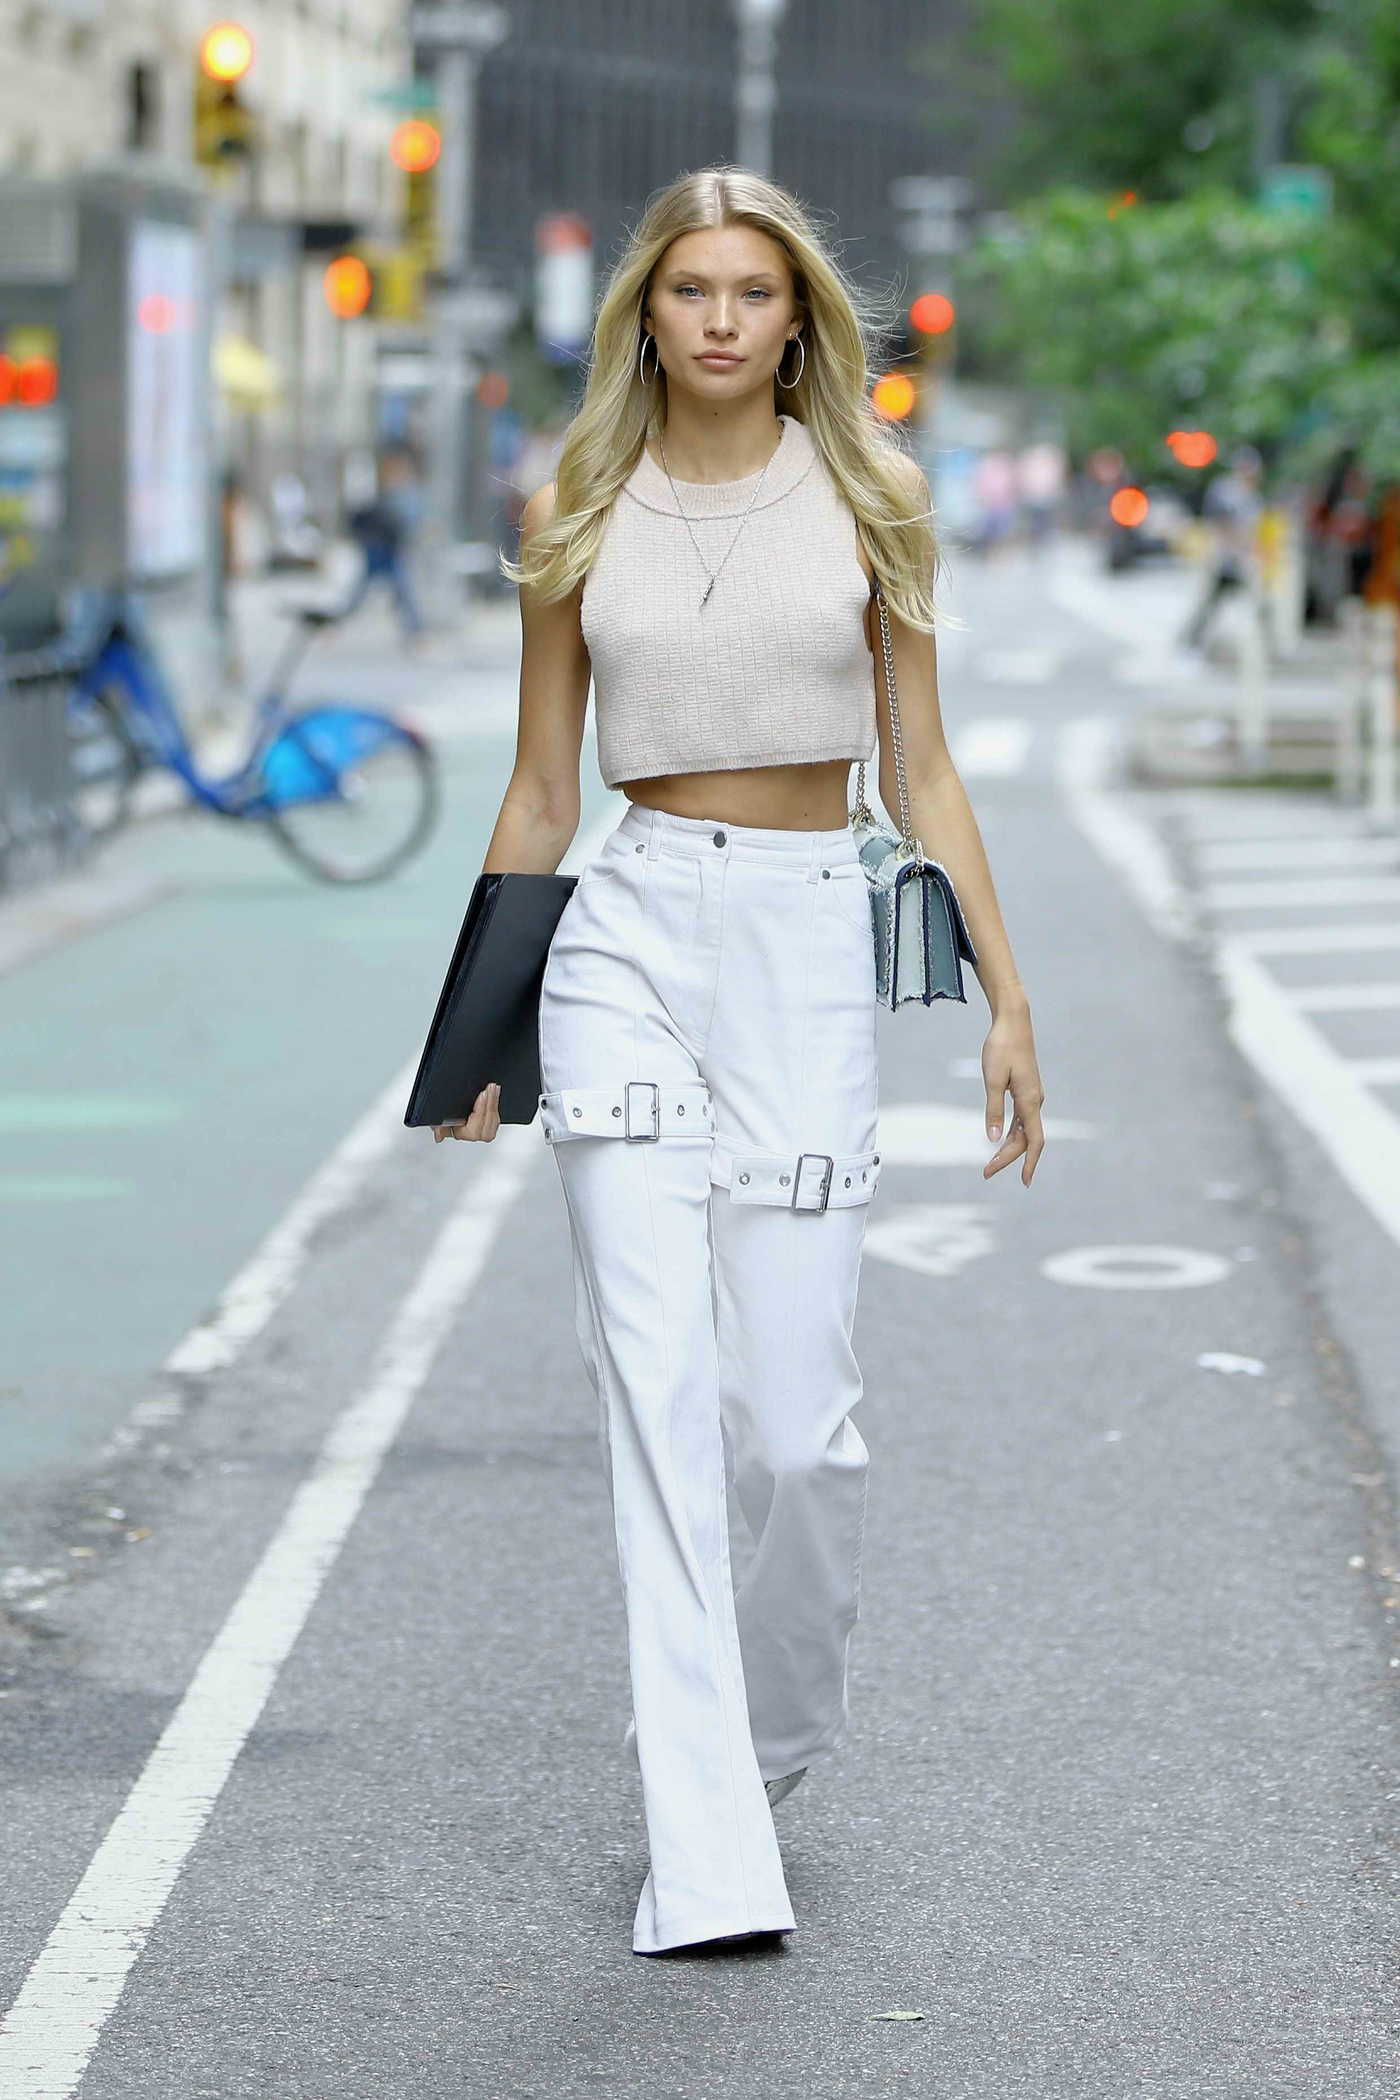 Josie Canseco Arrives at the Casting Call for the Victoria's Secret Fashion Show in NYC 08/30/2018